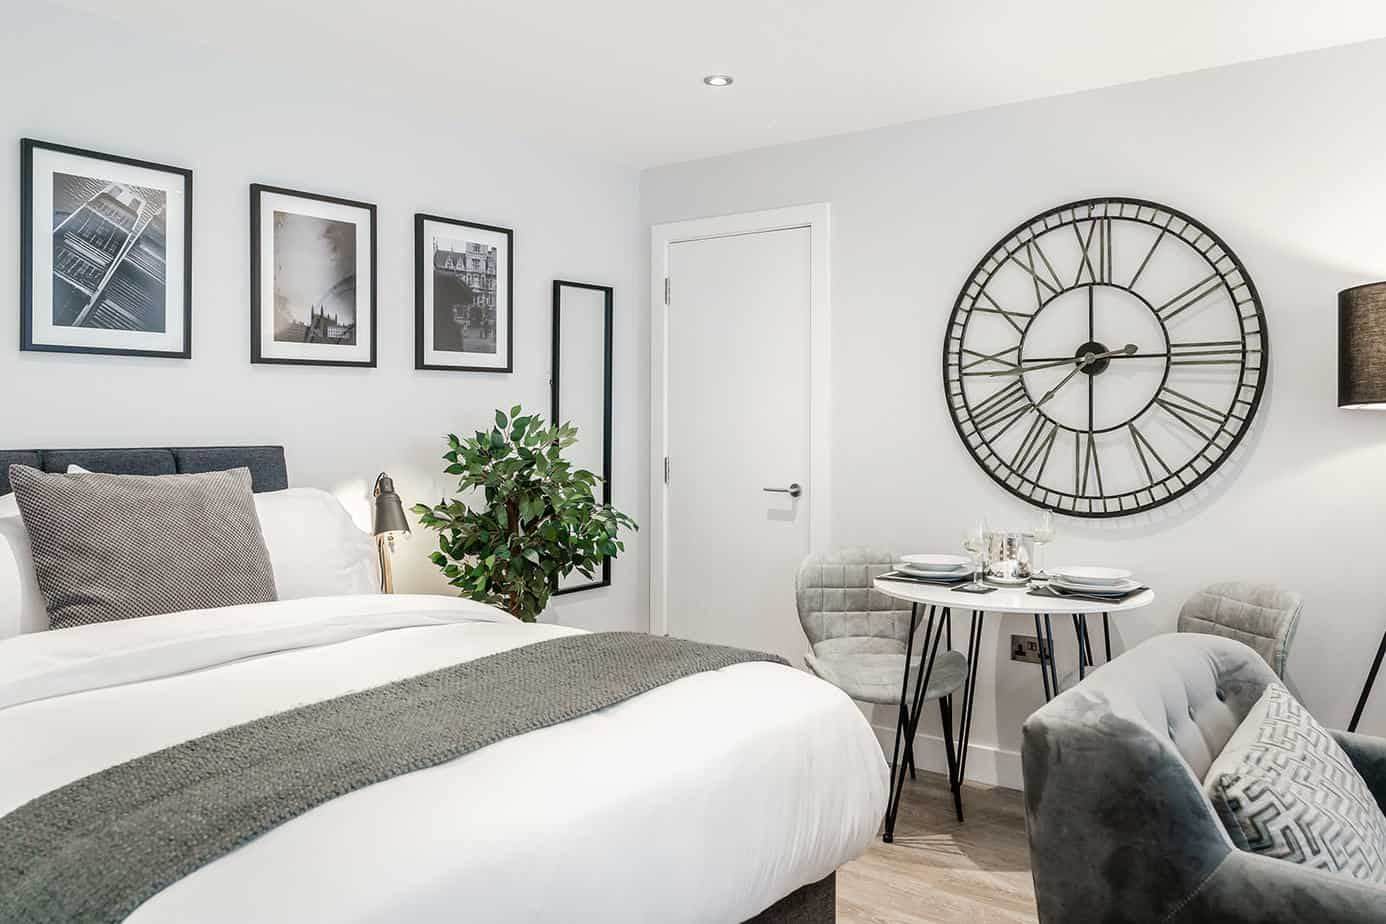 Tailored Stays Victoria Road modern serviced apartment studios 5 minutes from Cambridge town centre